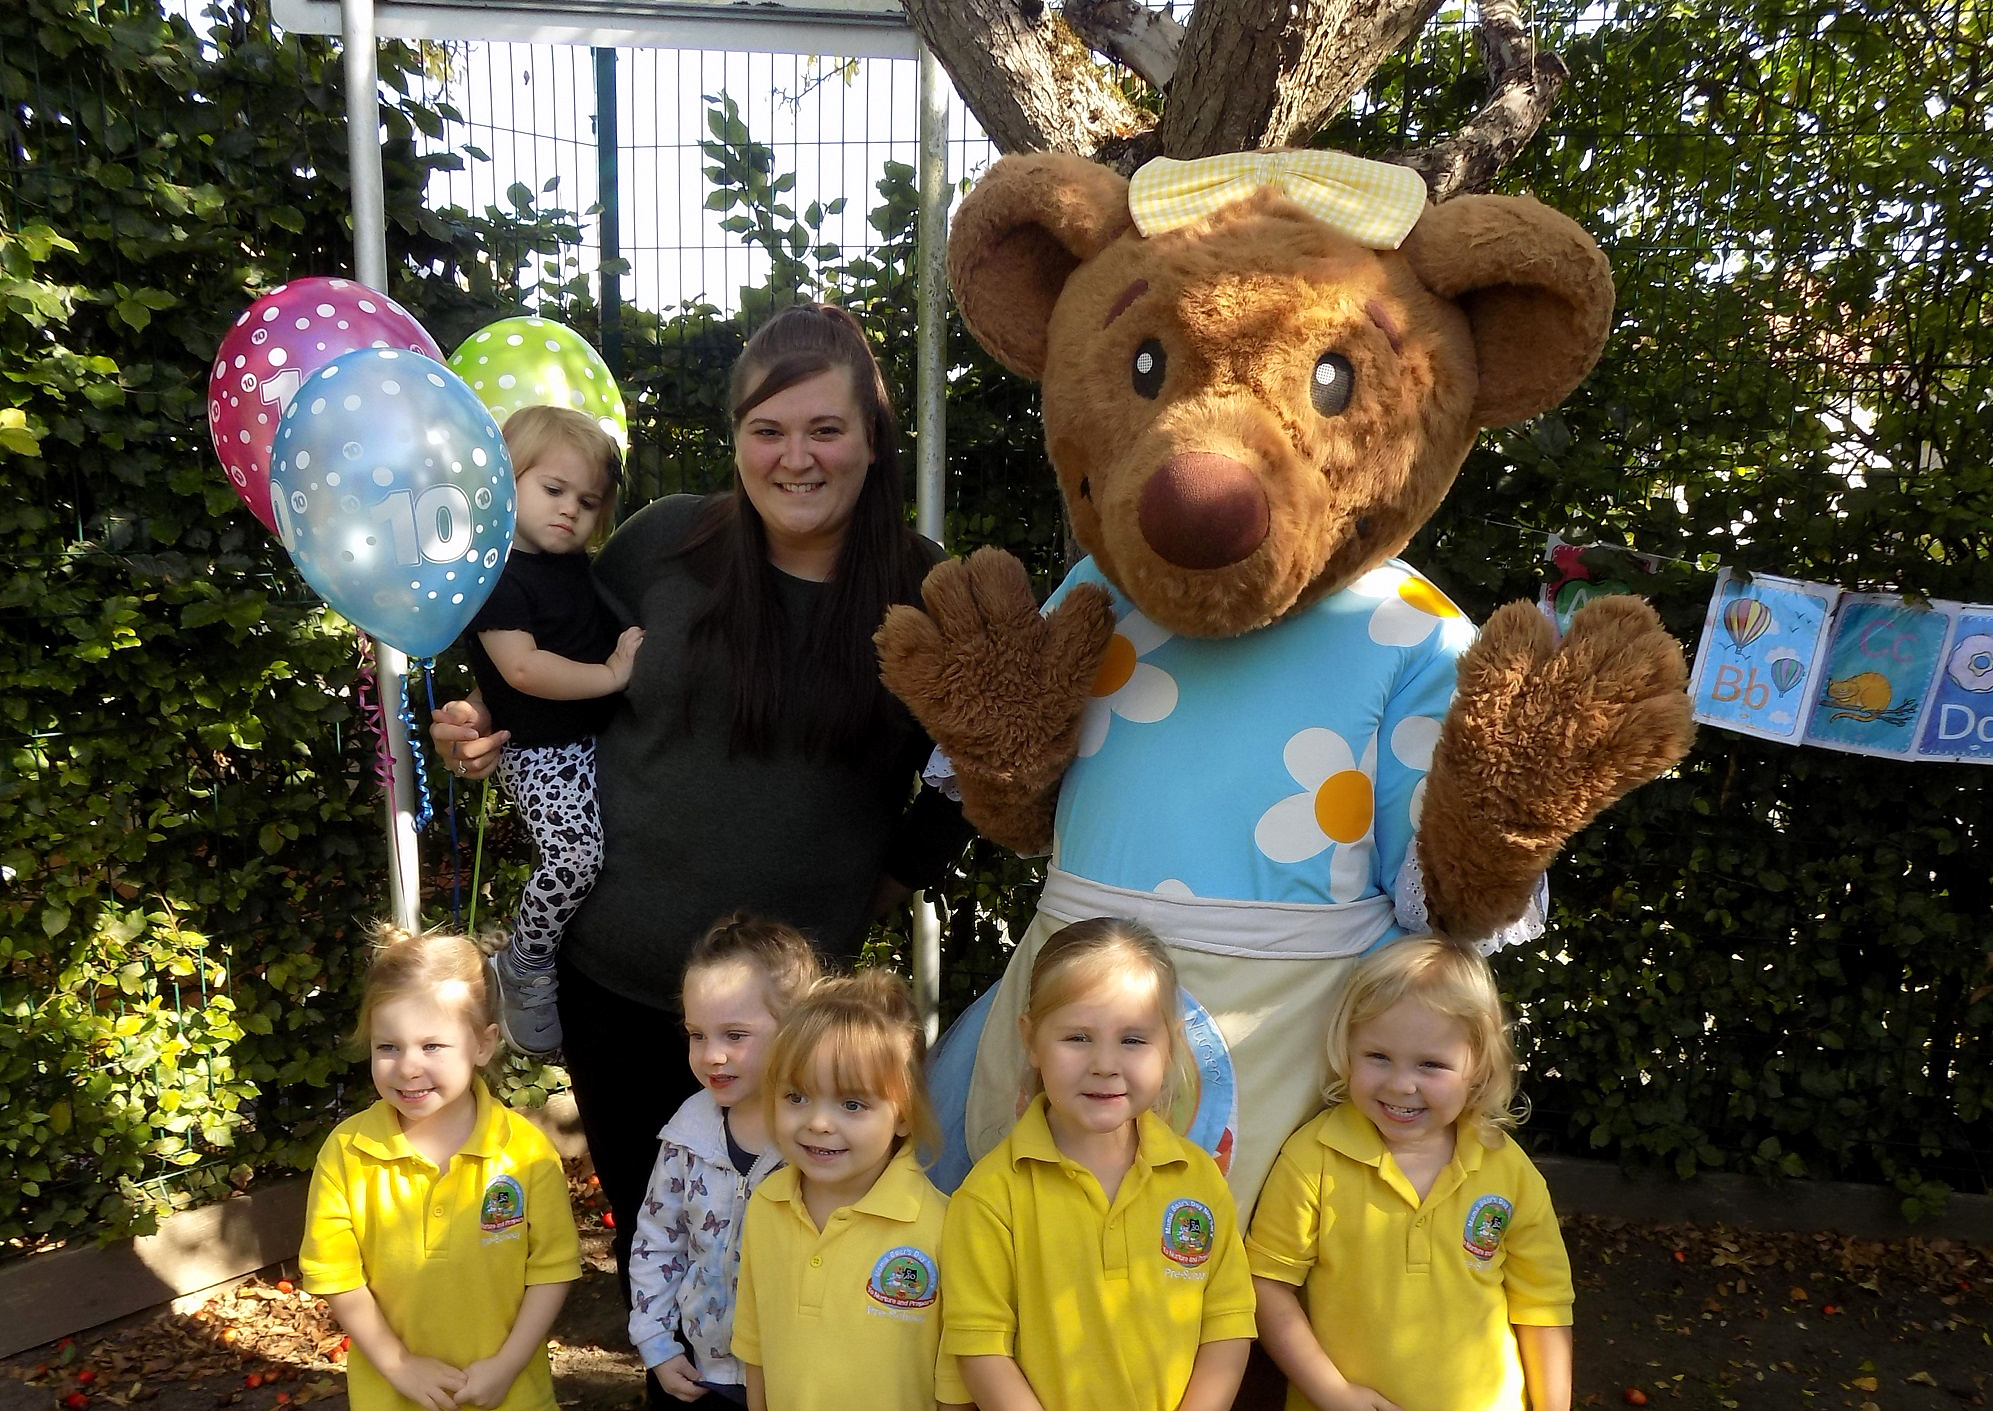 Soundwell nursery's happy anniversary